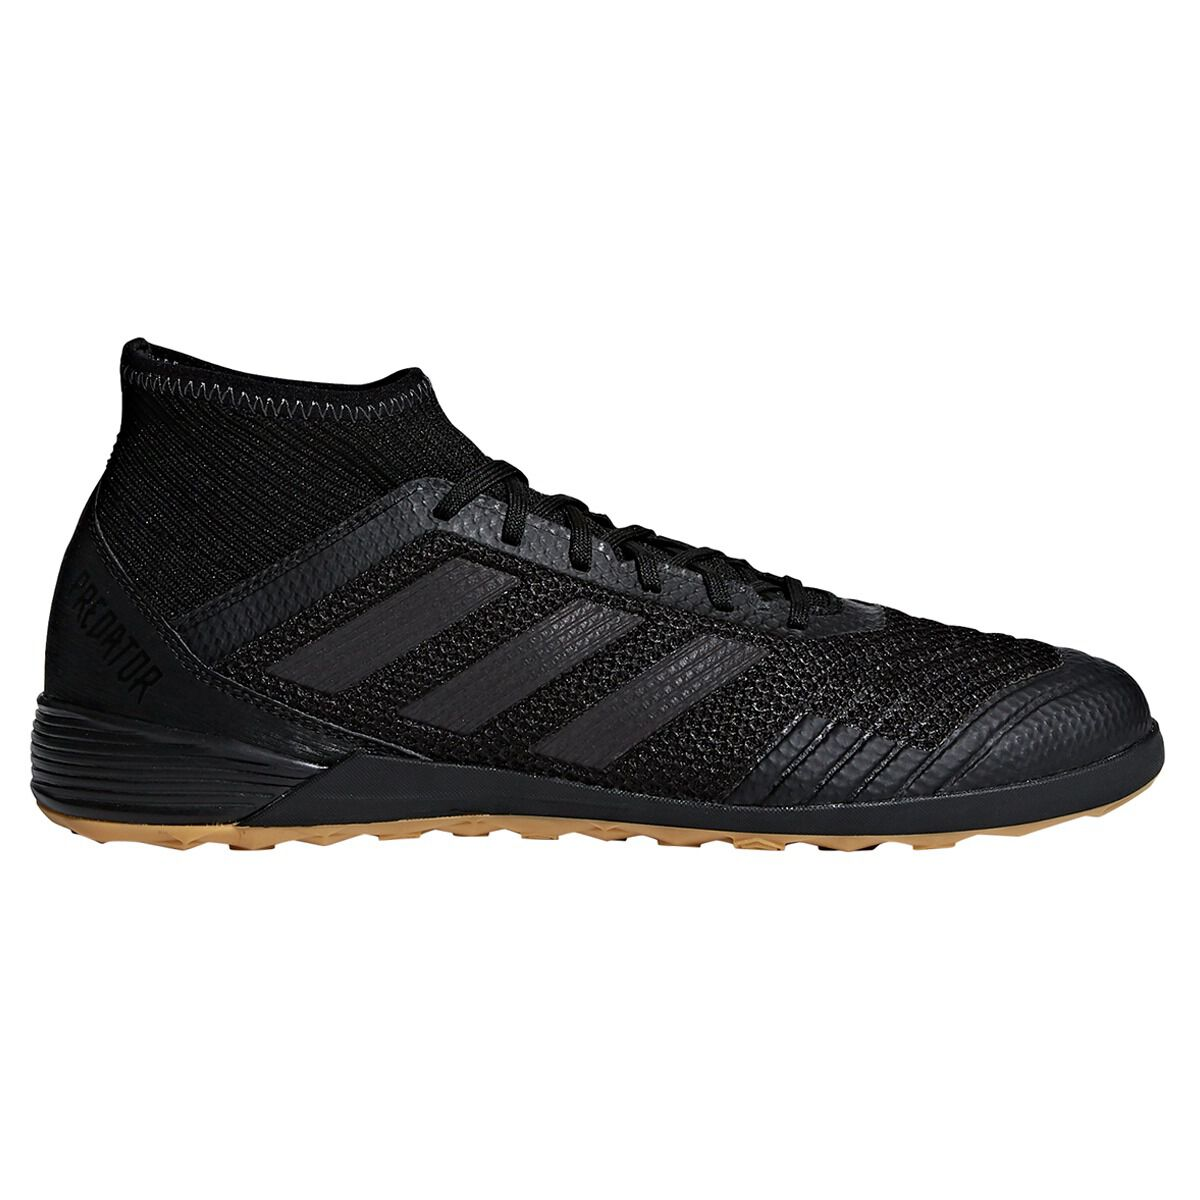 6c2c2314bac ... best price adidas predator tango 18.3 mens indoor soccer shoes rebelhi  res a78ac e21bd